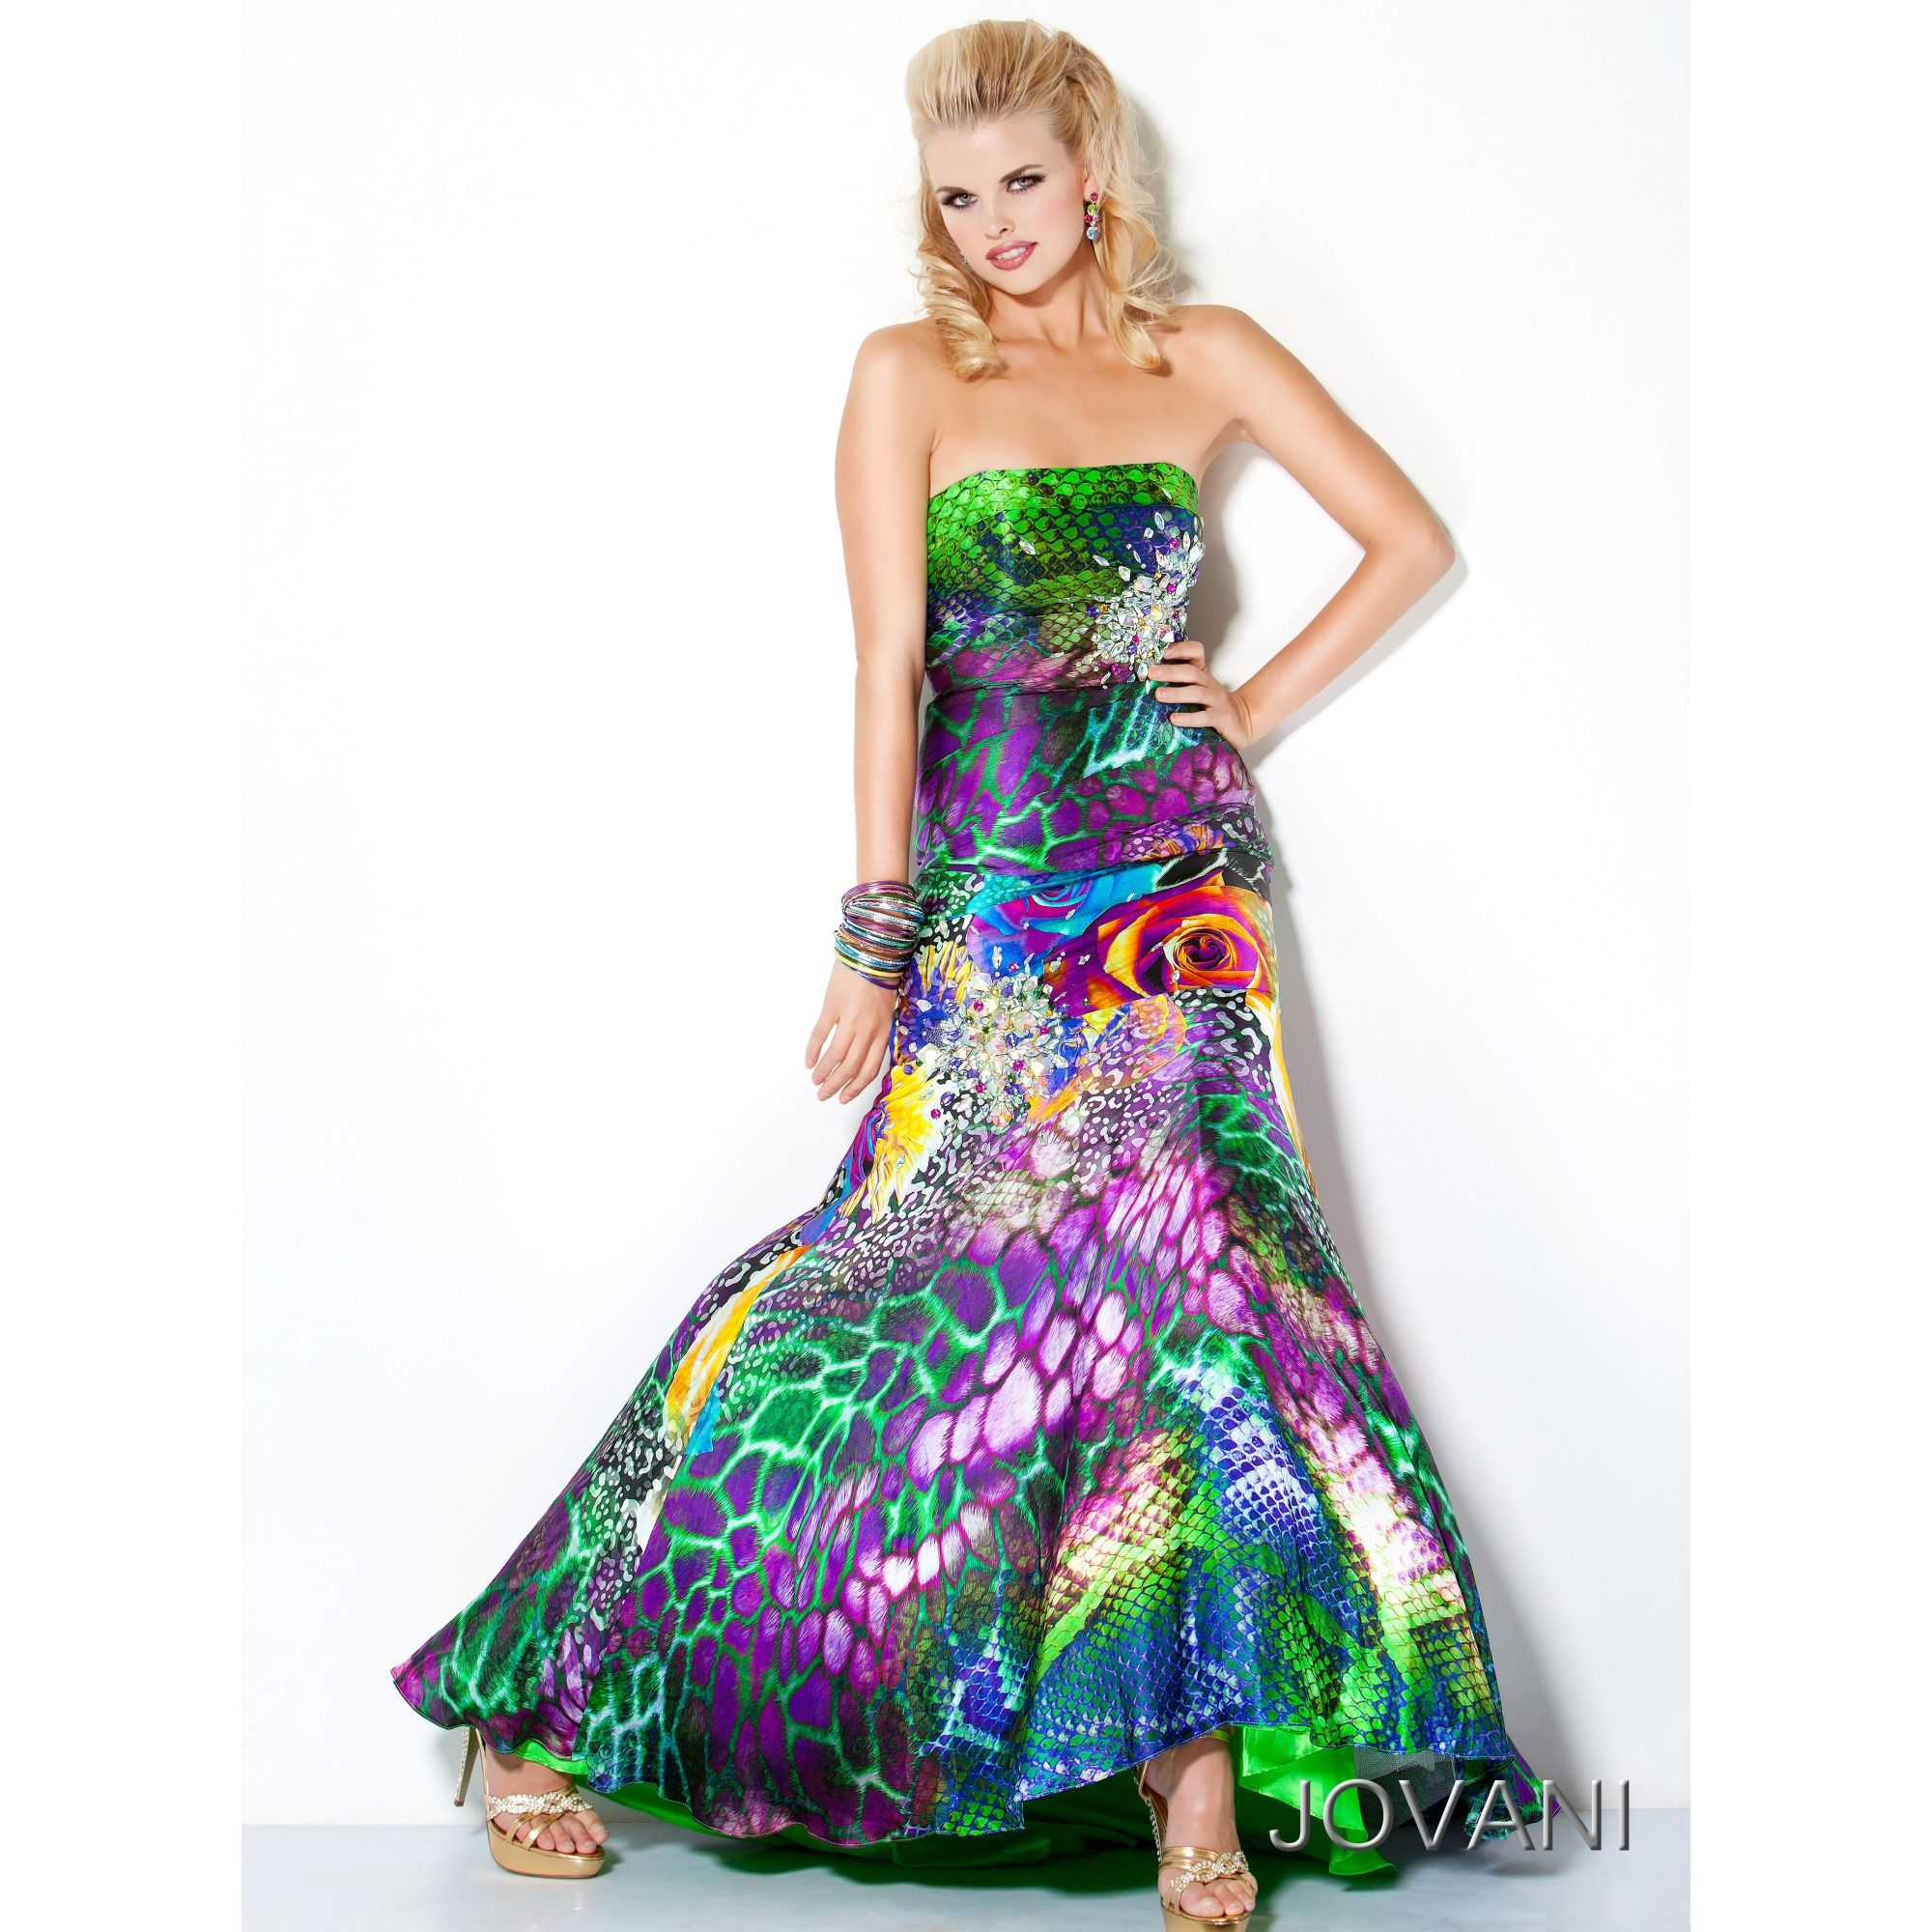 Animal print prom dress jovani animal floral print prom dress